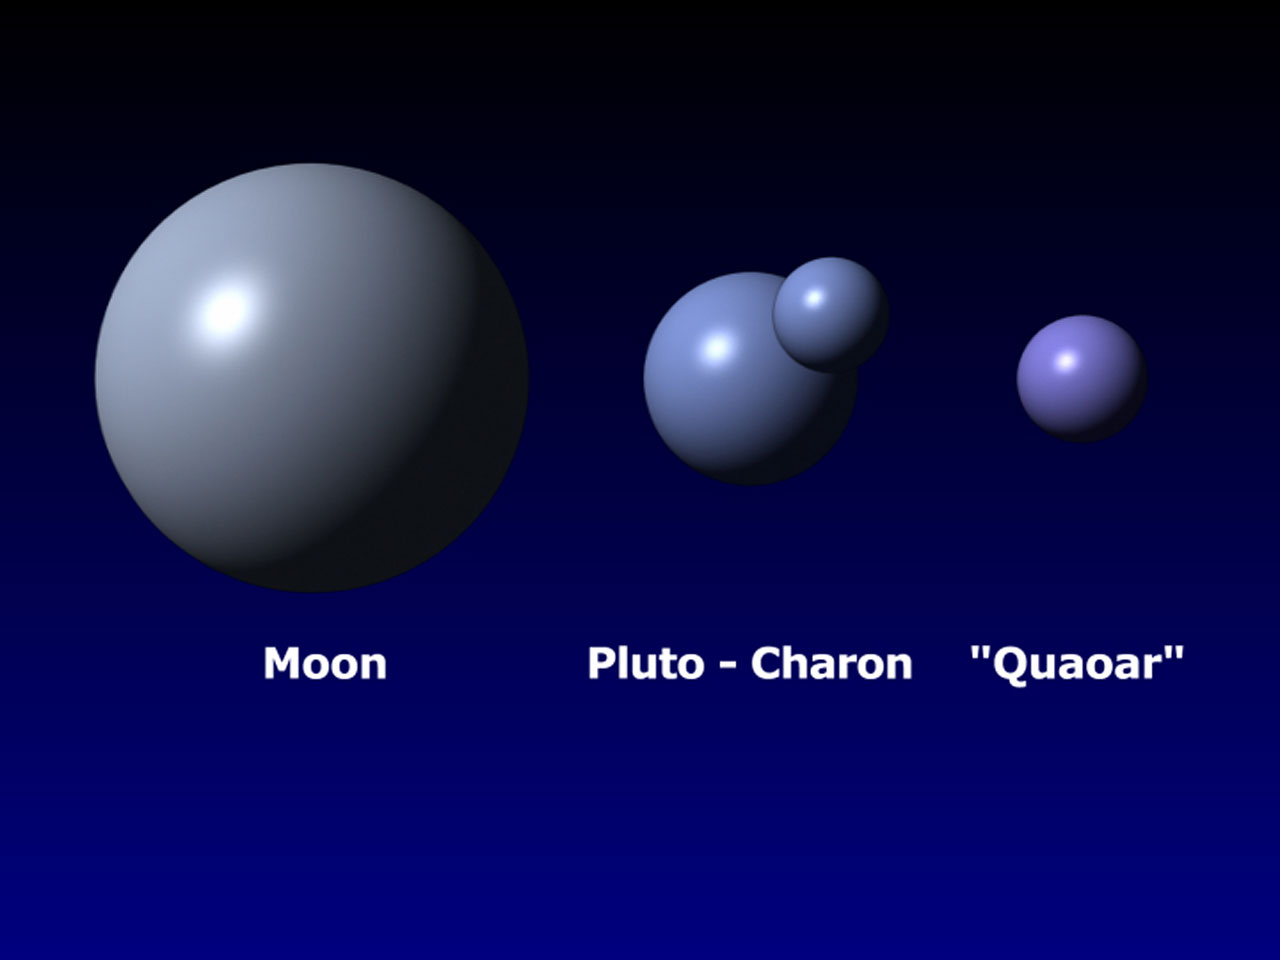 an essay on comparing the earth to pluto This video of class 4 of bruce betts' introduction to planetary science and astronomy class discusses eclipses, mercury, venus, and a comparison of the atmospheres of venus, earth, and mars items 1 - 10 of 38.